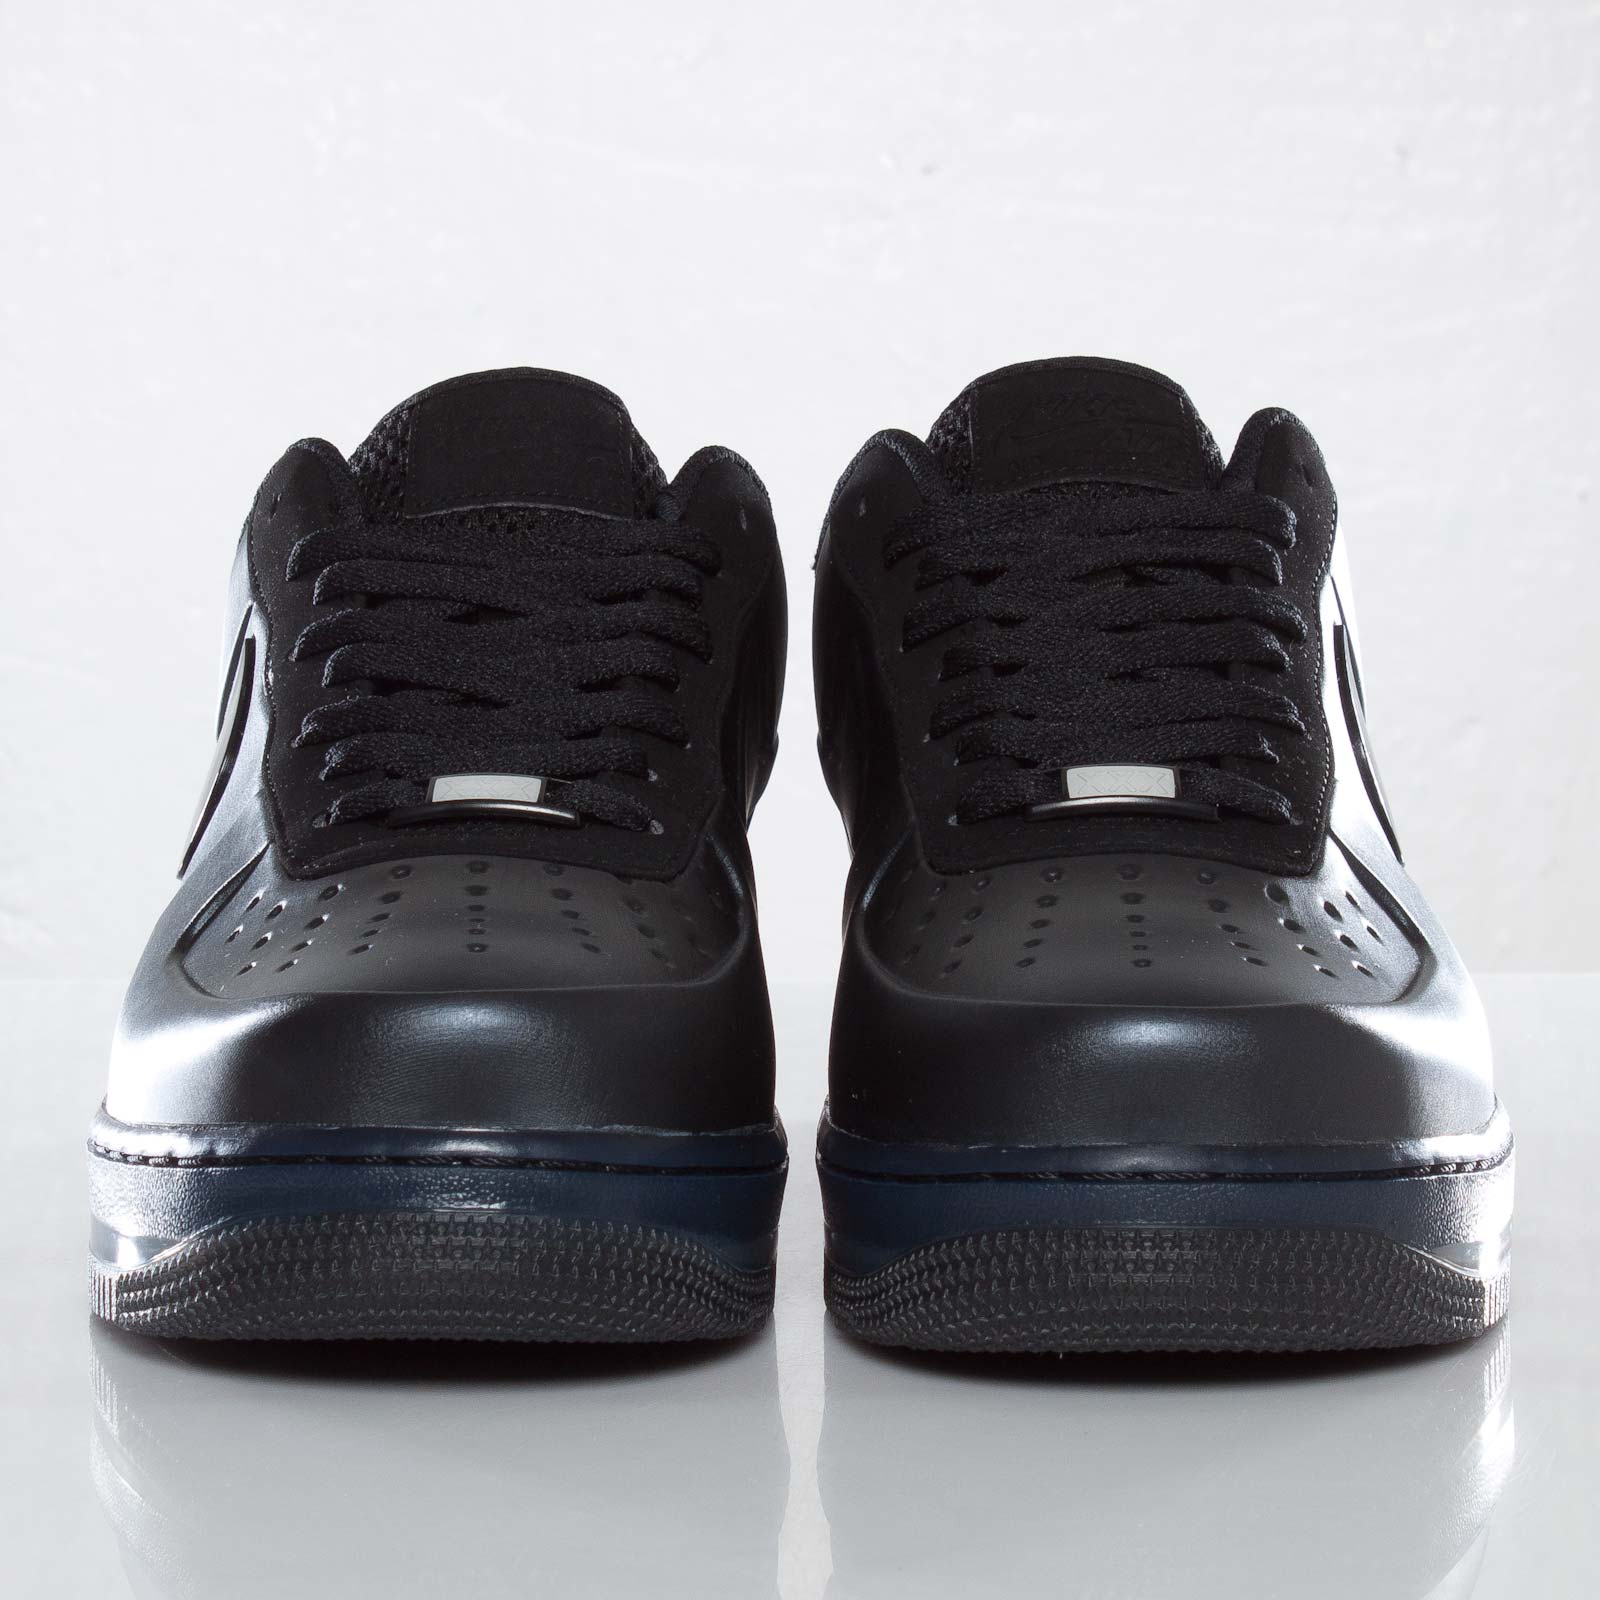 Nike Air Force 1 Posite FL Max QS 548968 010